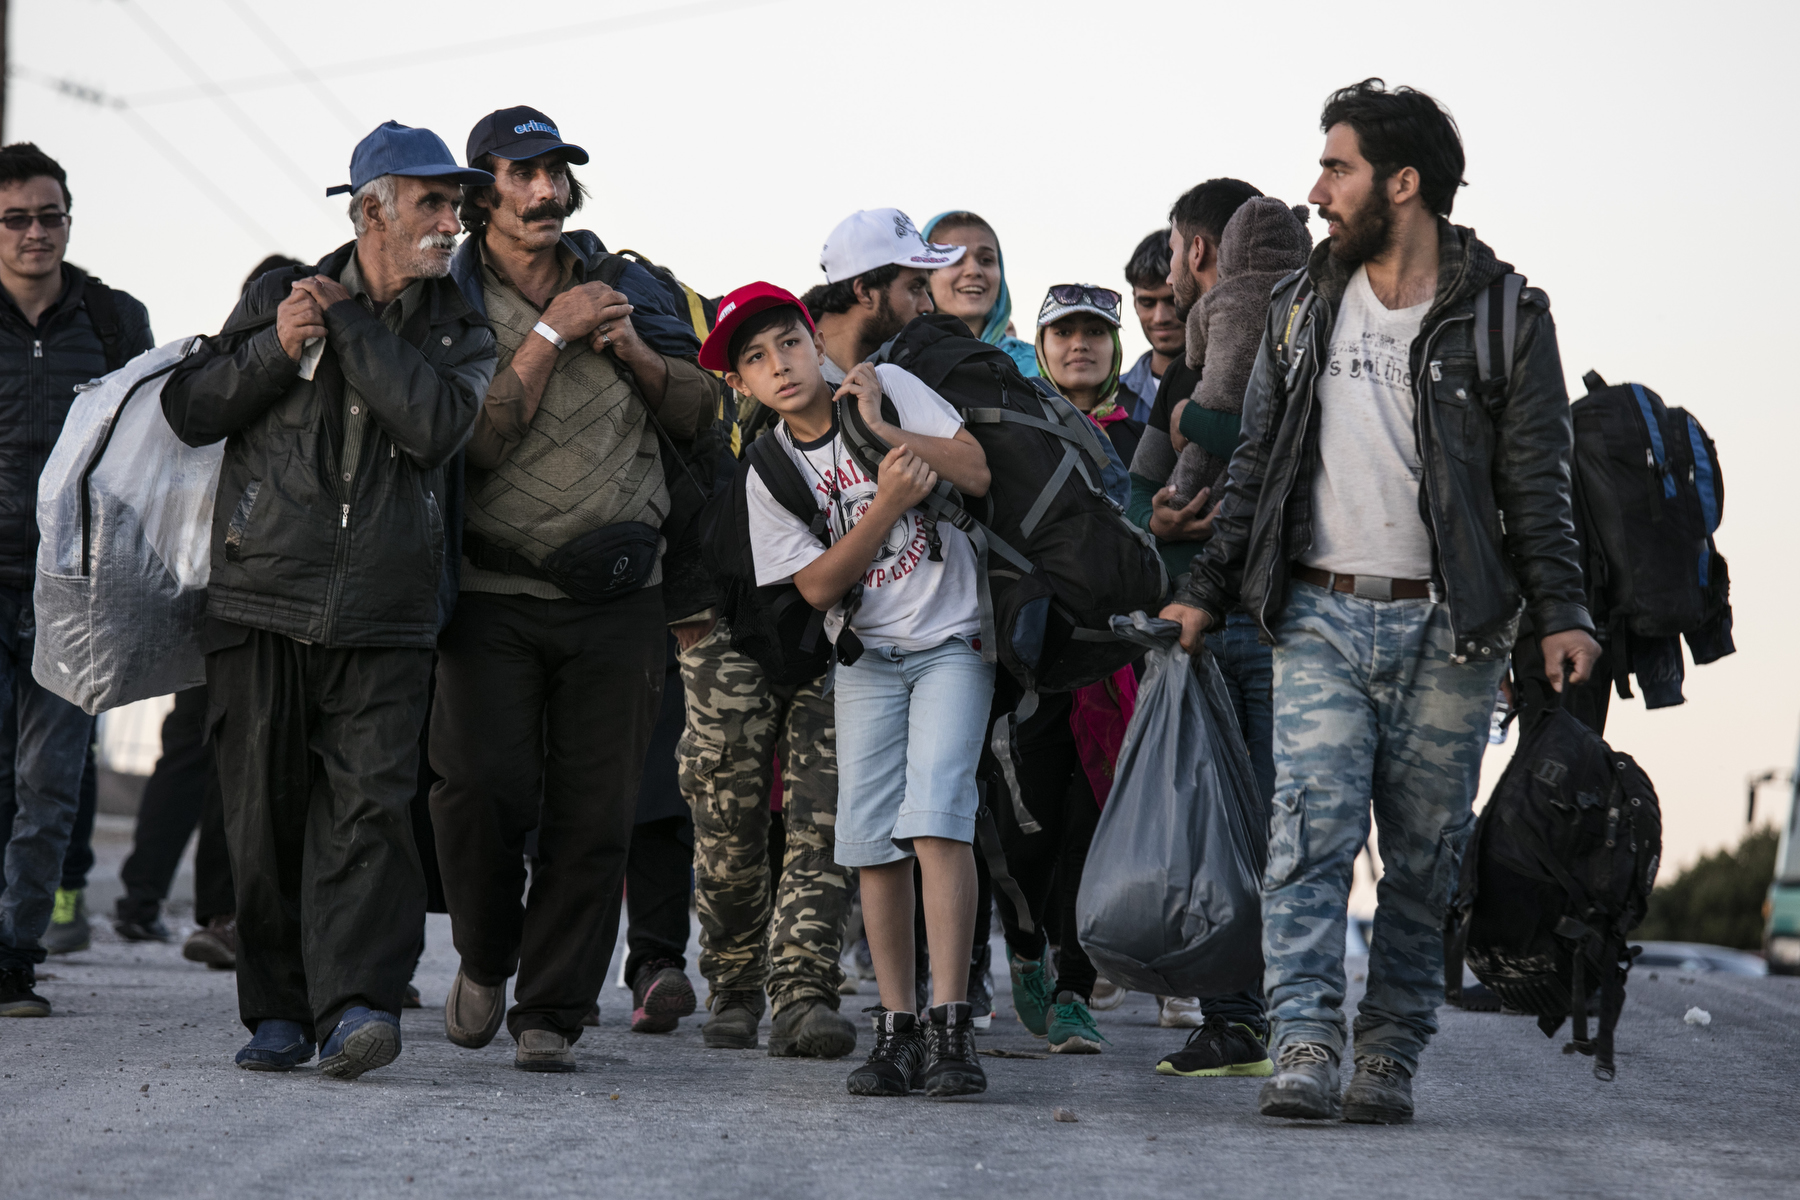 LESBOS, GREECE - NOVEMBER 3: Refugees walk to a transitional camp to spend the night. Colder weather and rough seas continue to cause deaths at sea as thousands travel in overcrowded small rafts. According to the IOM, an estimated 100,000 people landed in Greece, an average of almost 4,500 per day in late October and November. Nearly all of those entering Greece on a boat from Turkey are from the war zones of Syria, Iraq and Afghanistan. (Photo by Paula Bronstein)